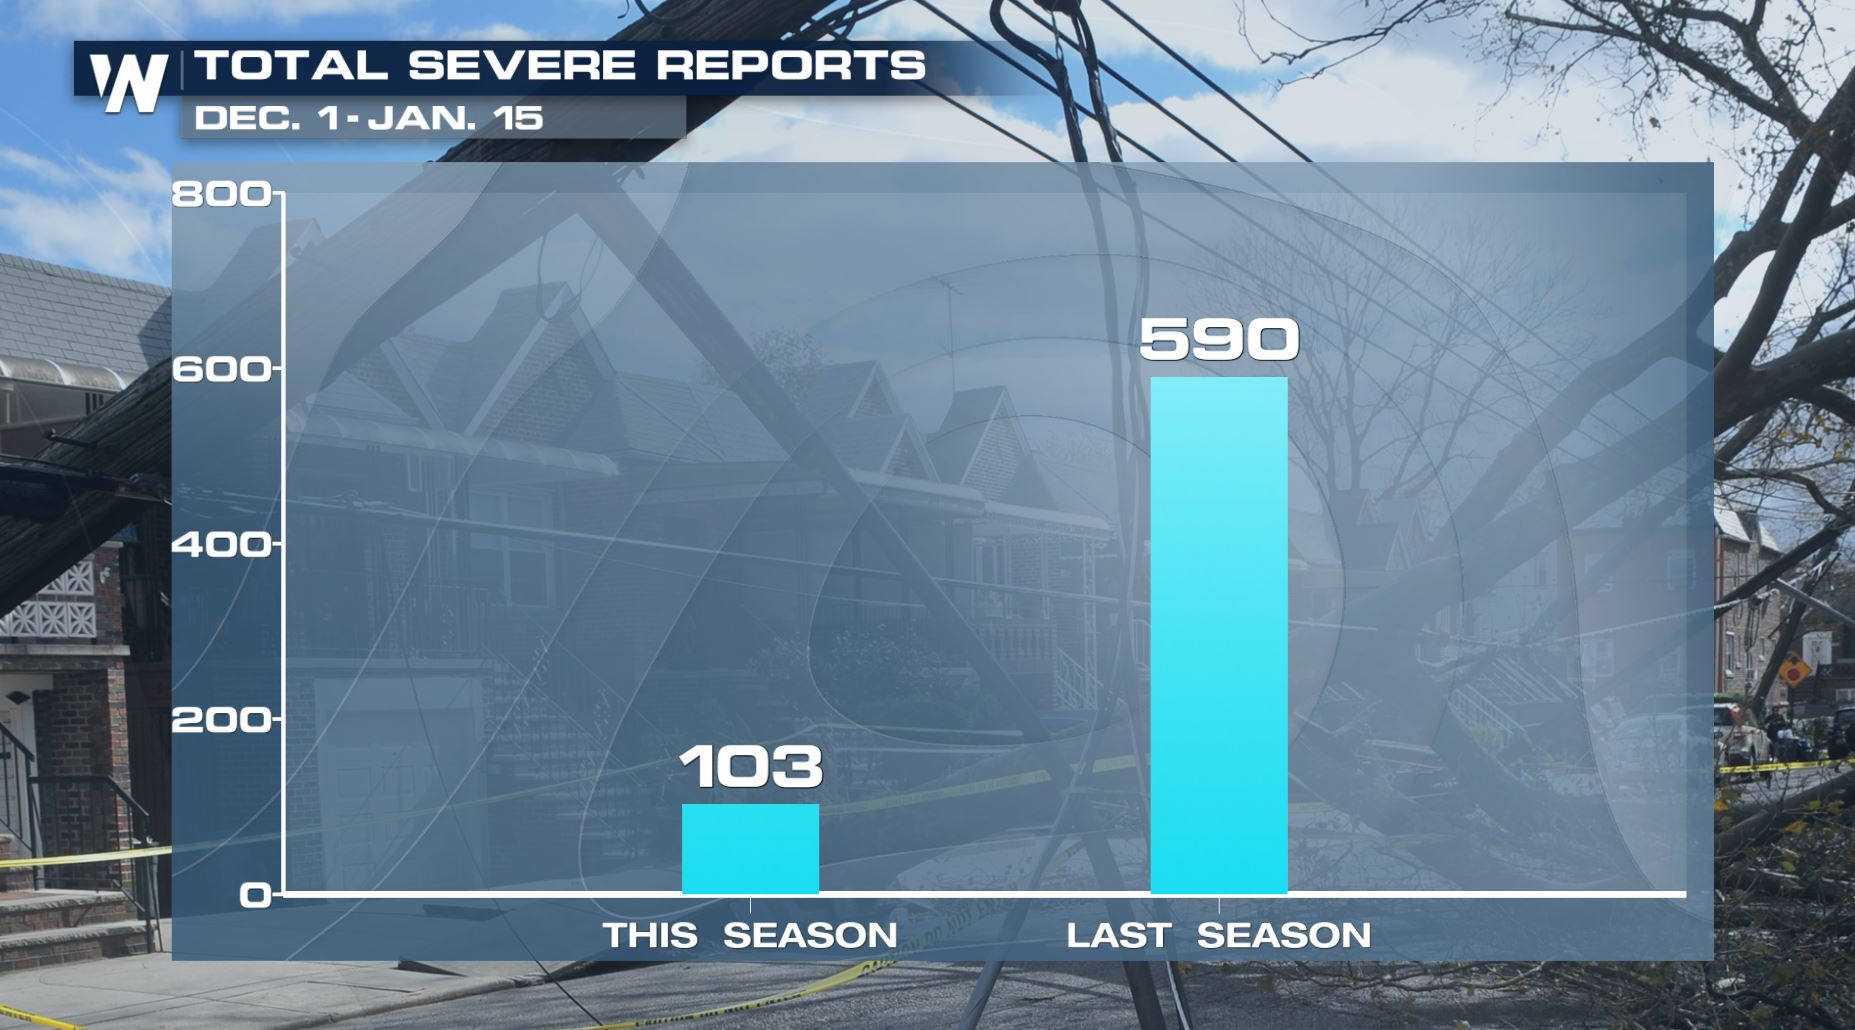 Recent Cold Weather Has Helped Limit Severe Weather